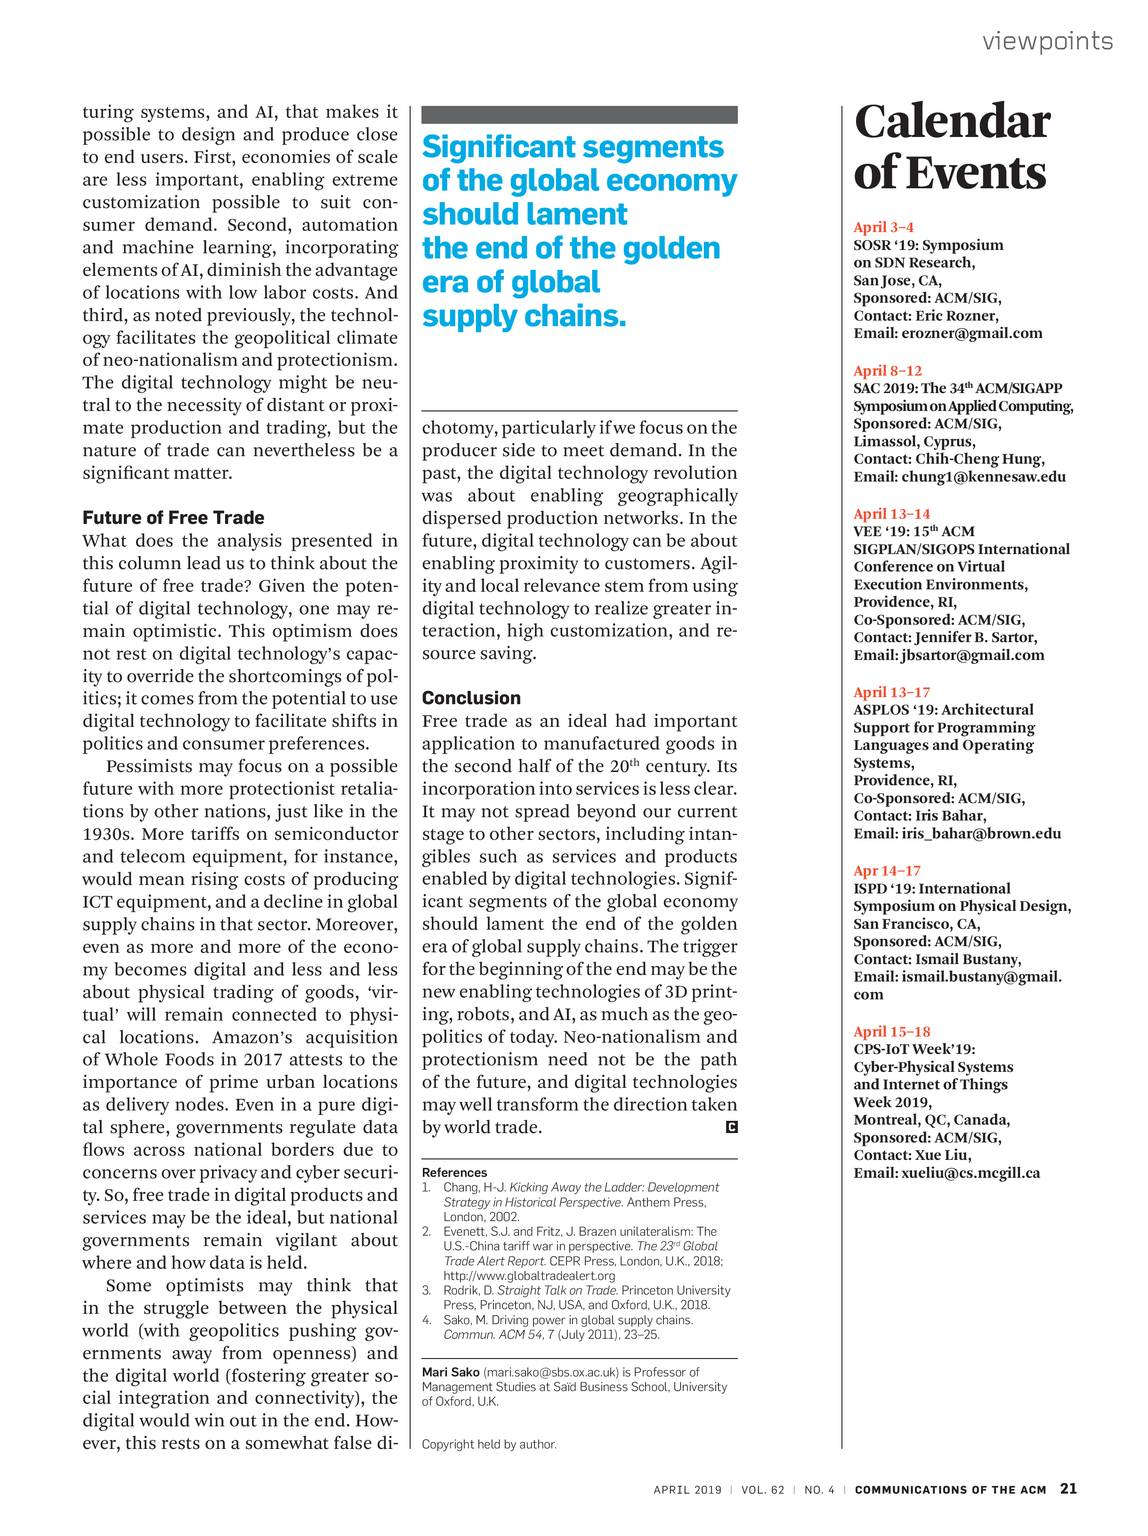 Communications of the ACM - April 2019 - page 20